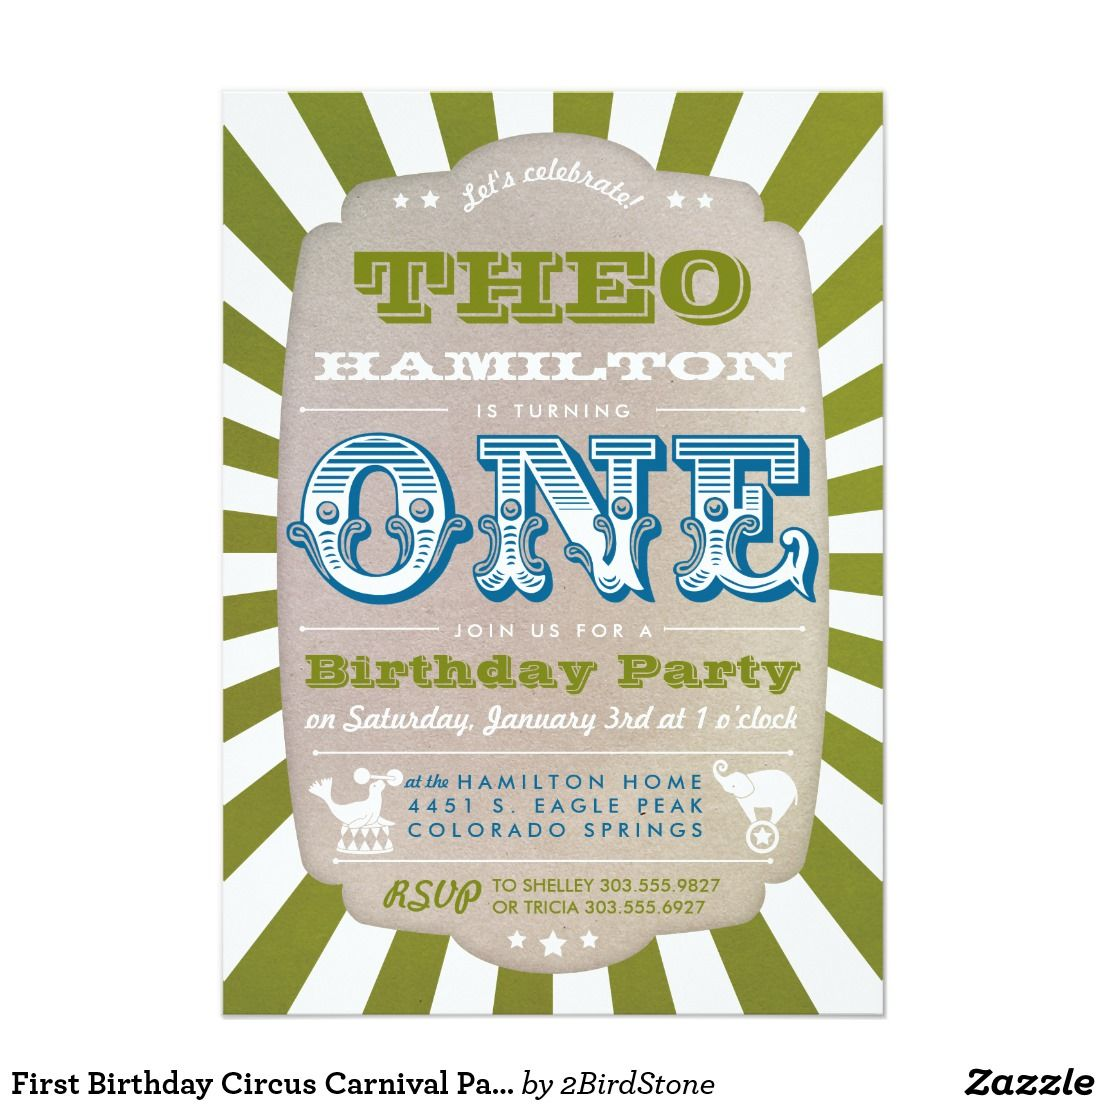 First Birthday Circus Carnival Party Invitation | Pinterest ...